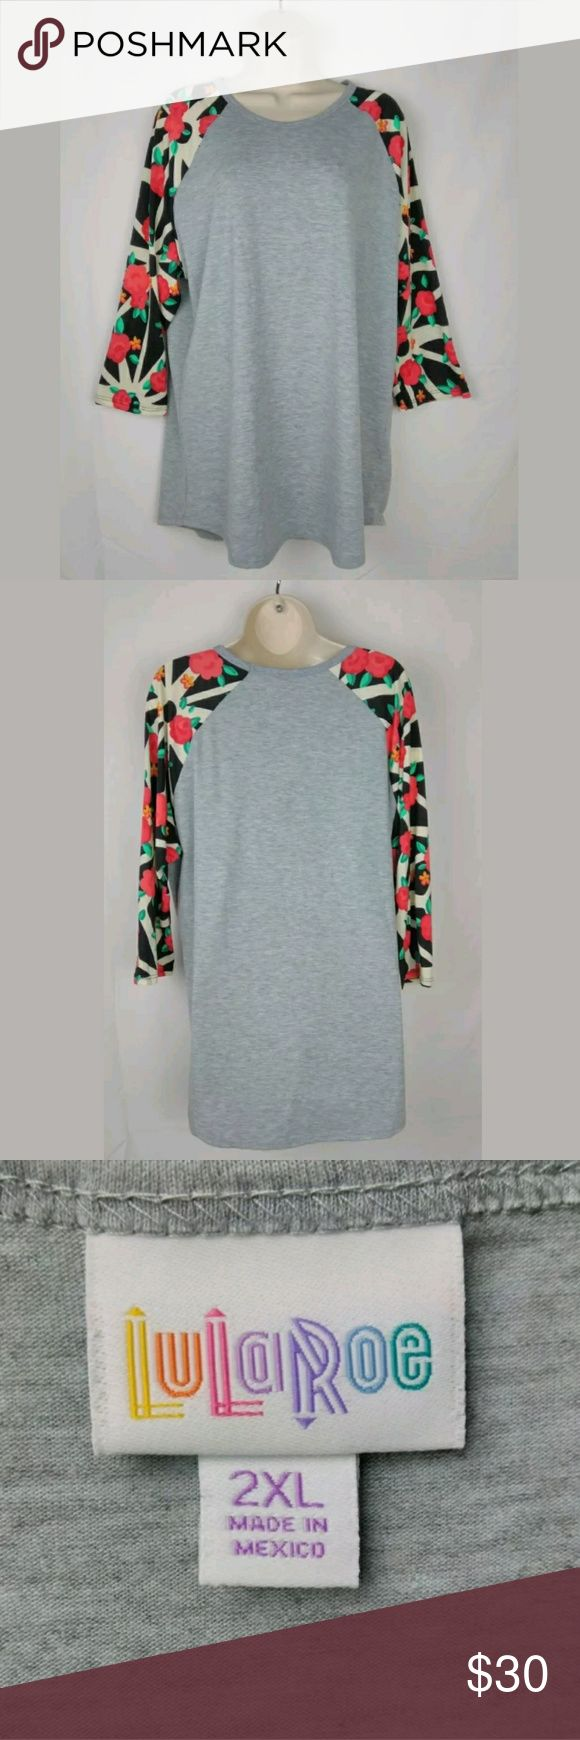 Lularoe Women's Floral Randy Tee Size 2X Lularoe Gray Randy T-Shirt Floral Pattern 3/4 Sleeves   Size 2X  Cute & casual!  EUC  Please feel free to message me if you have any questions.  Stored in a clean, smoke free and pet free environment.  Thank you (#78-B) LuLaRoe Tops